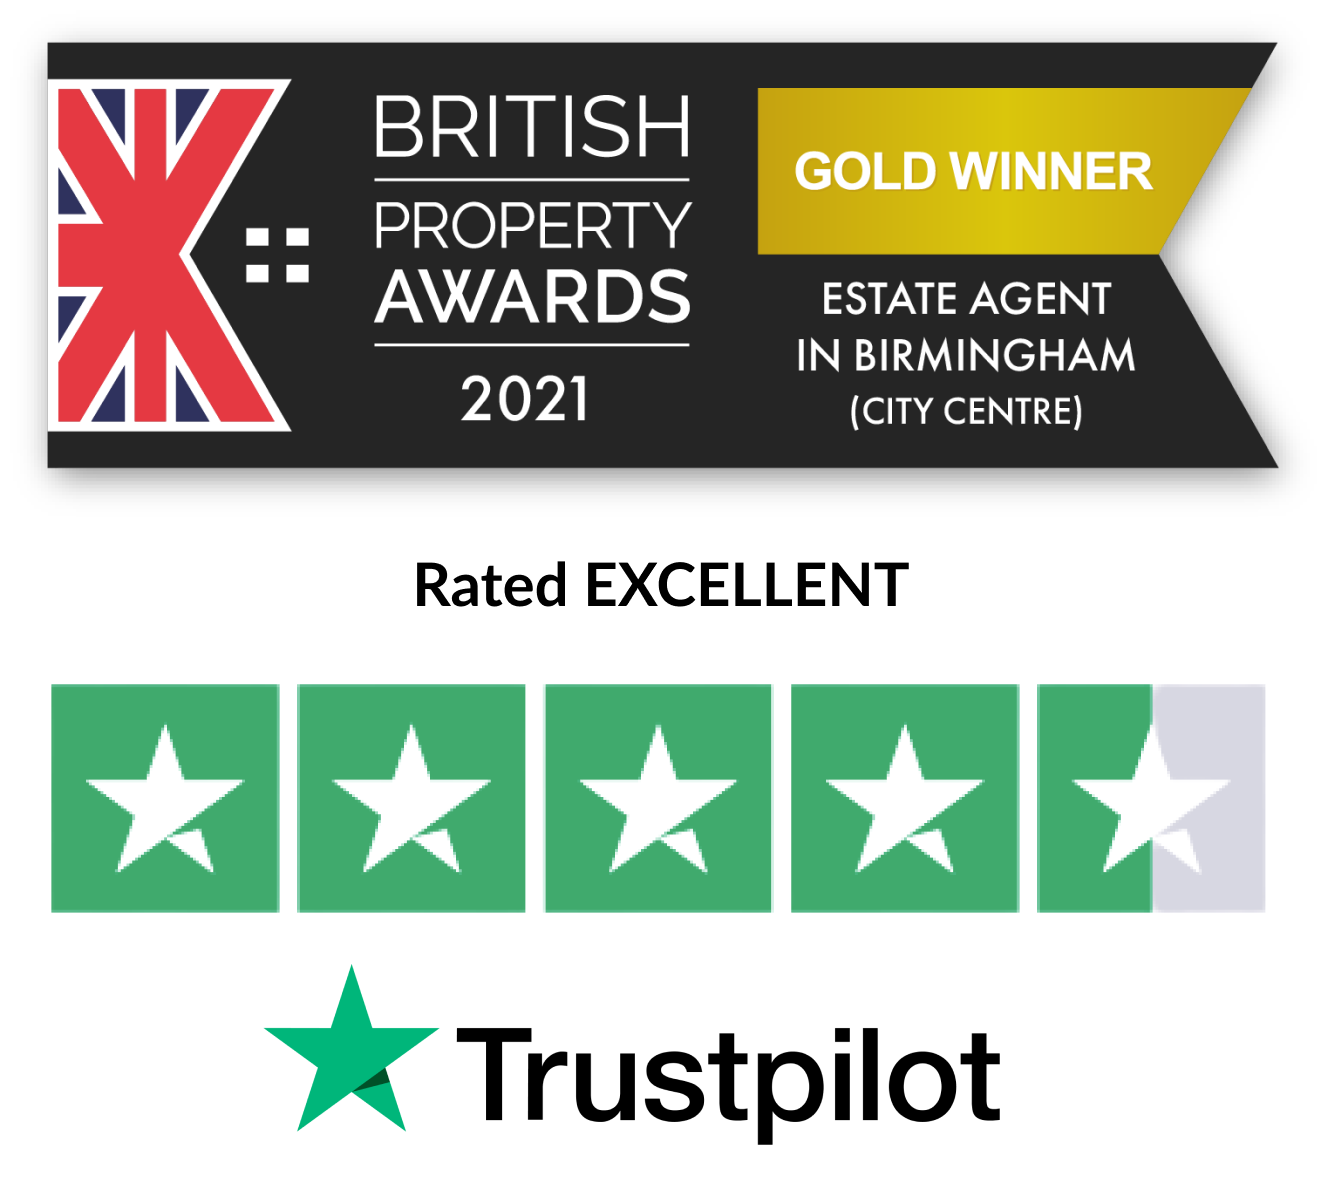 estate agent award winning and rated excellent on trustpilot